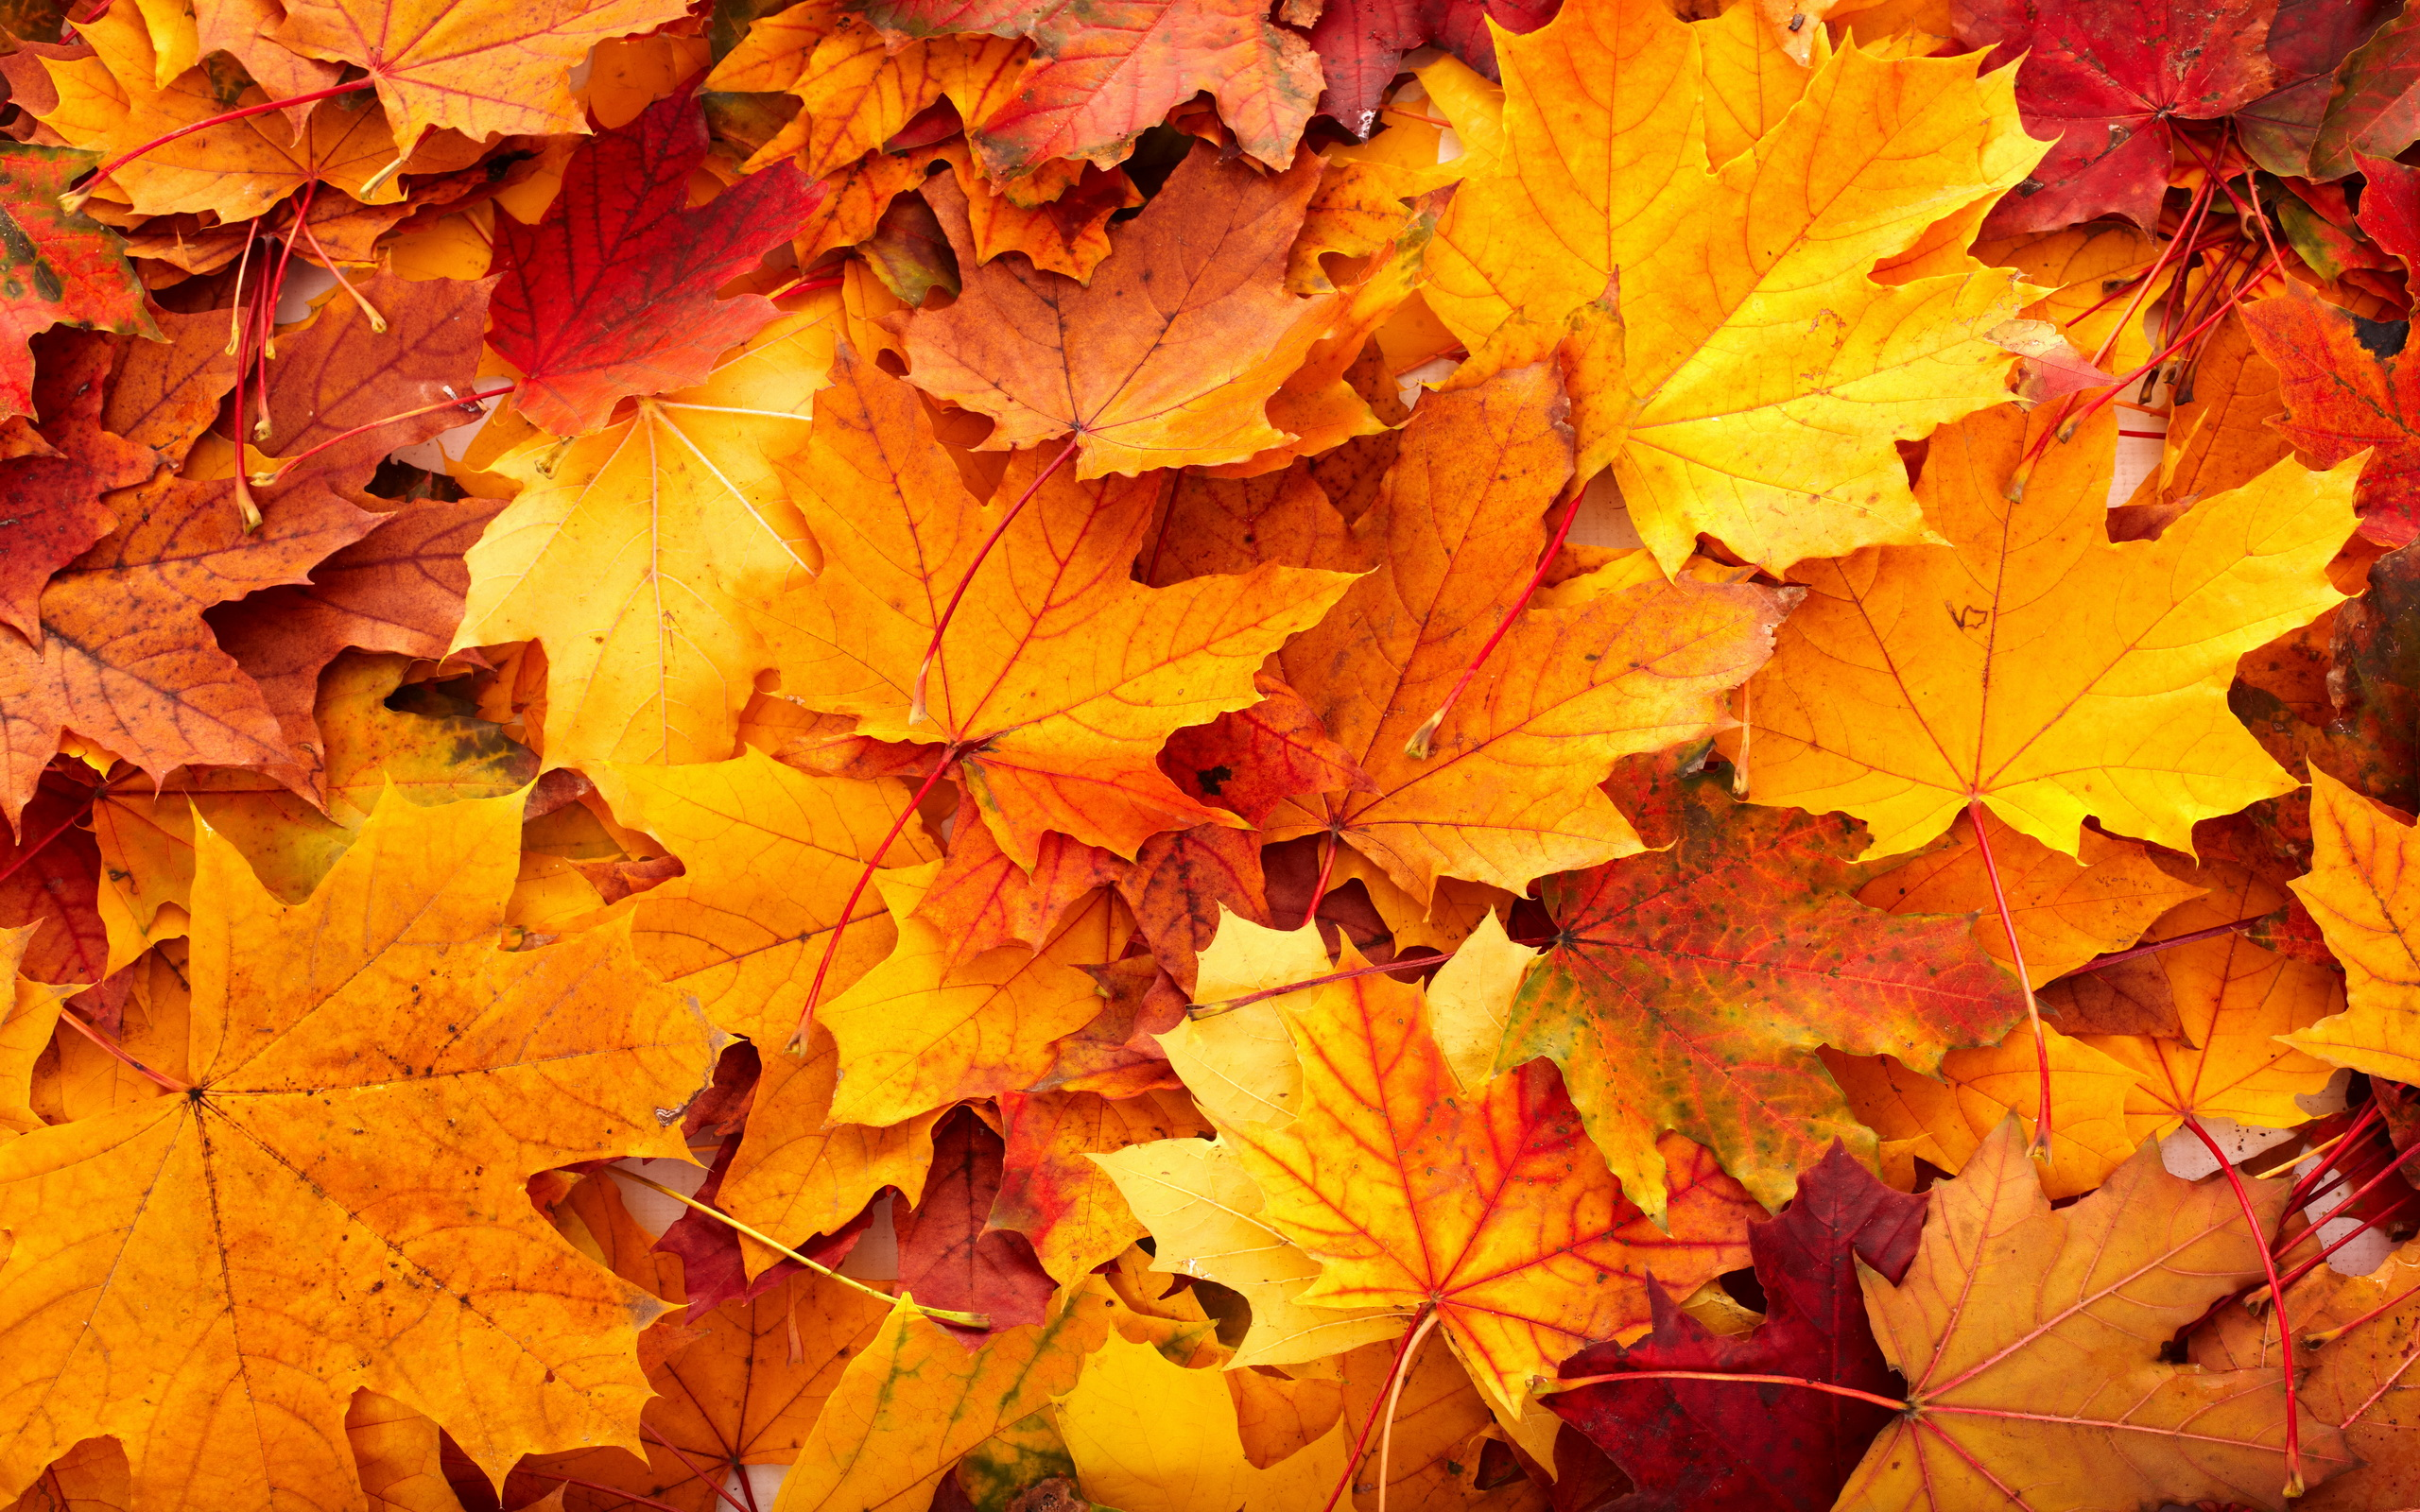 autumn-leaves-tumblr-wallpaper-1.jpg